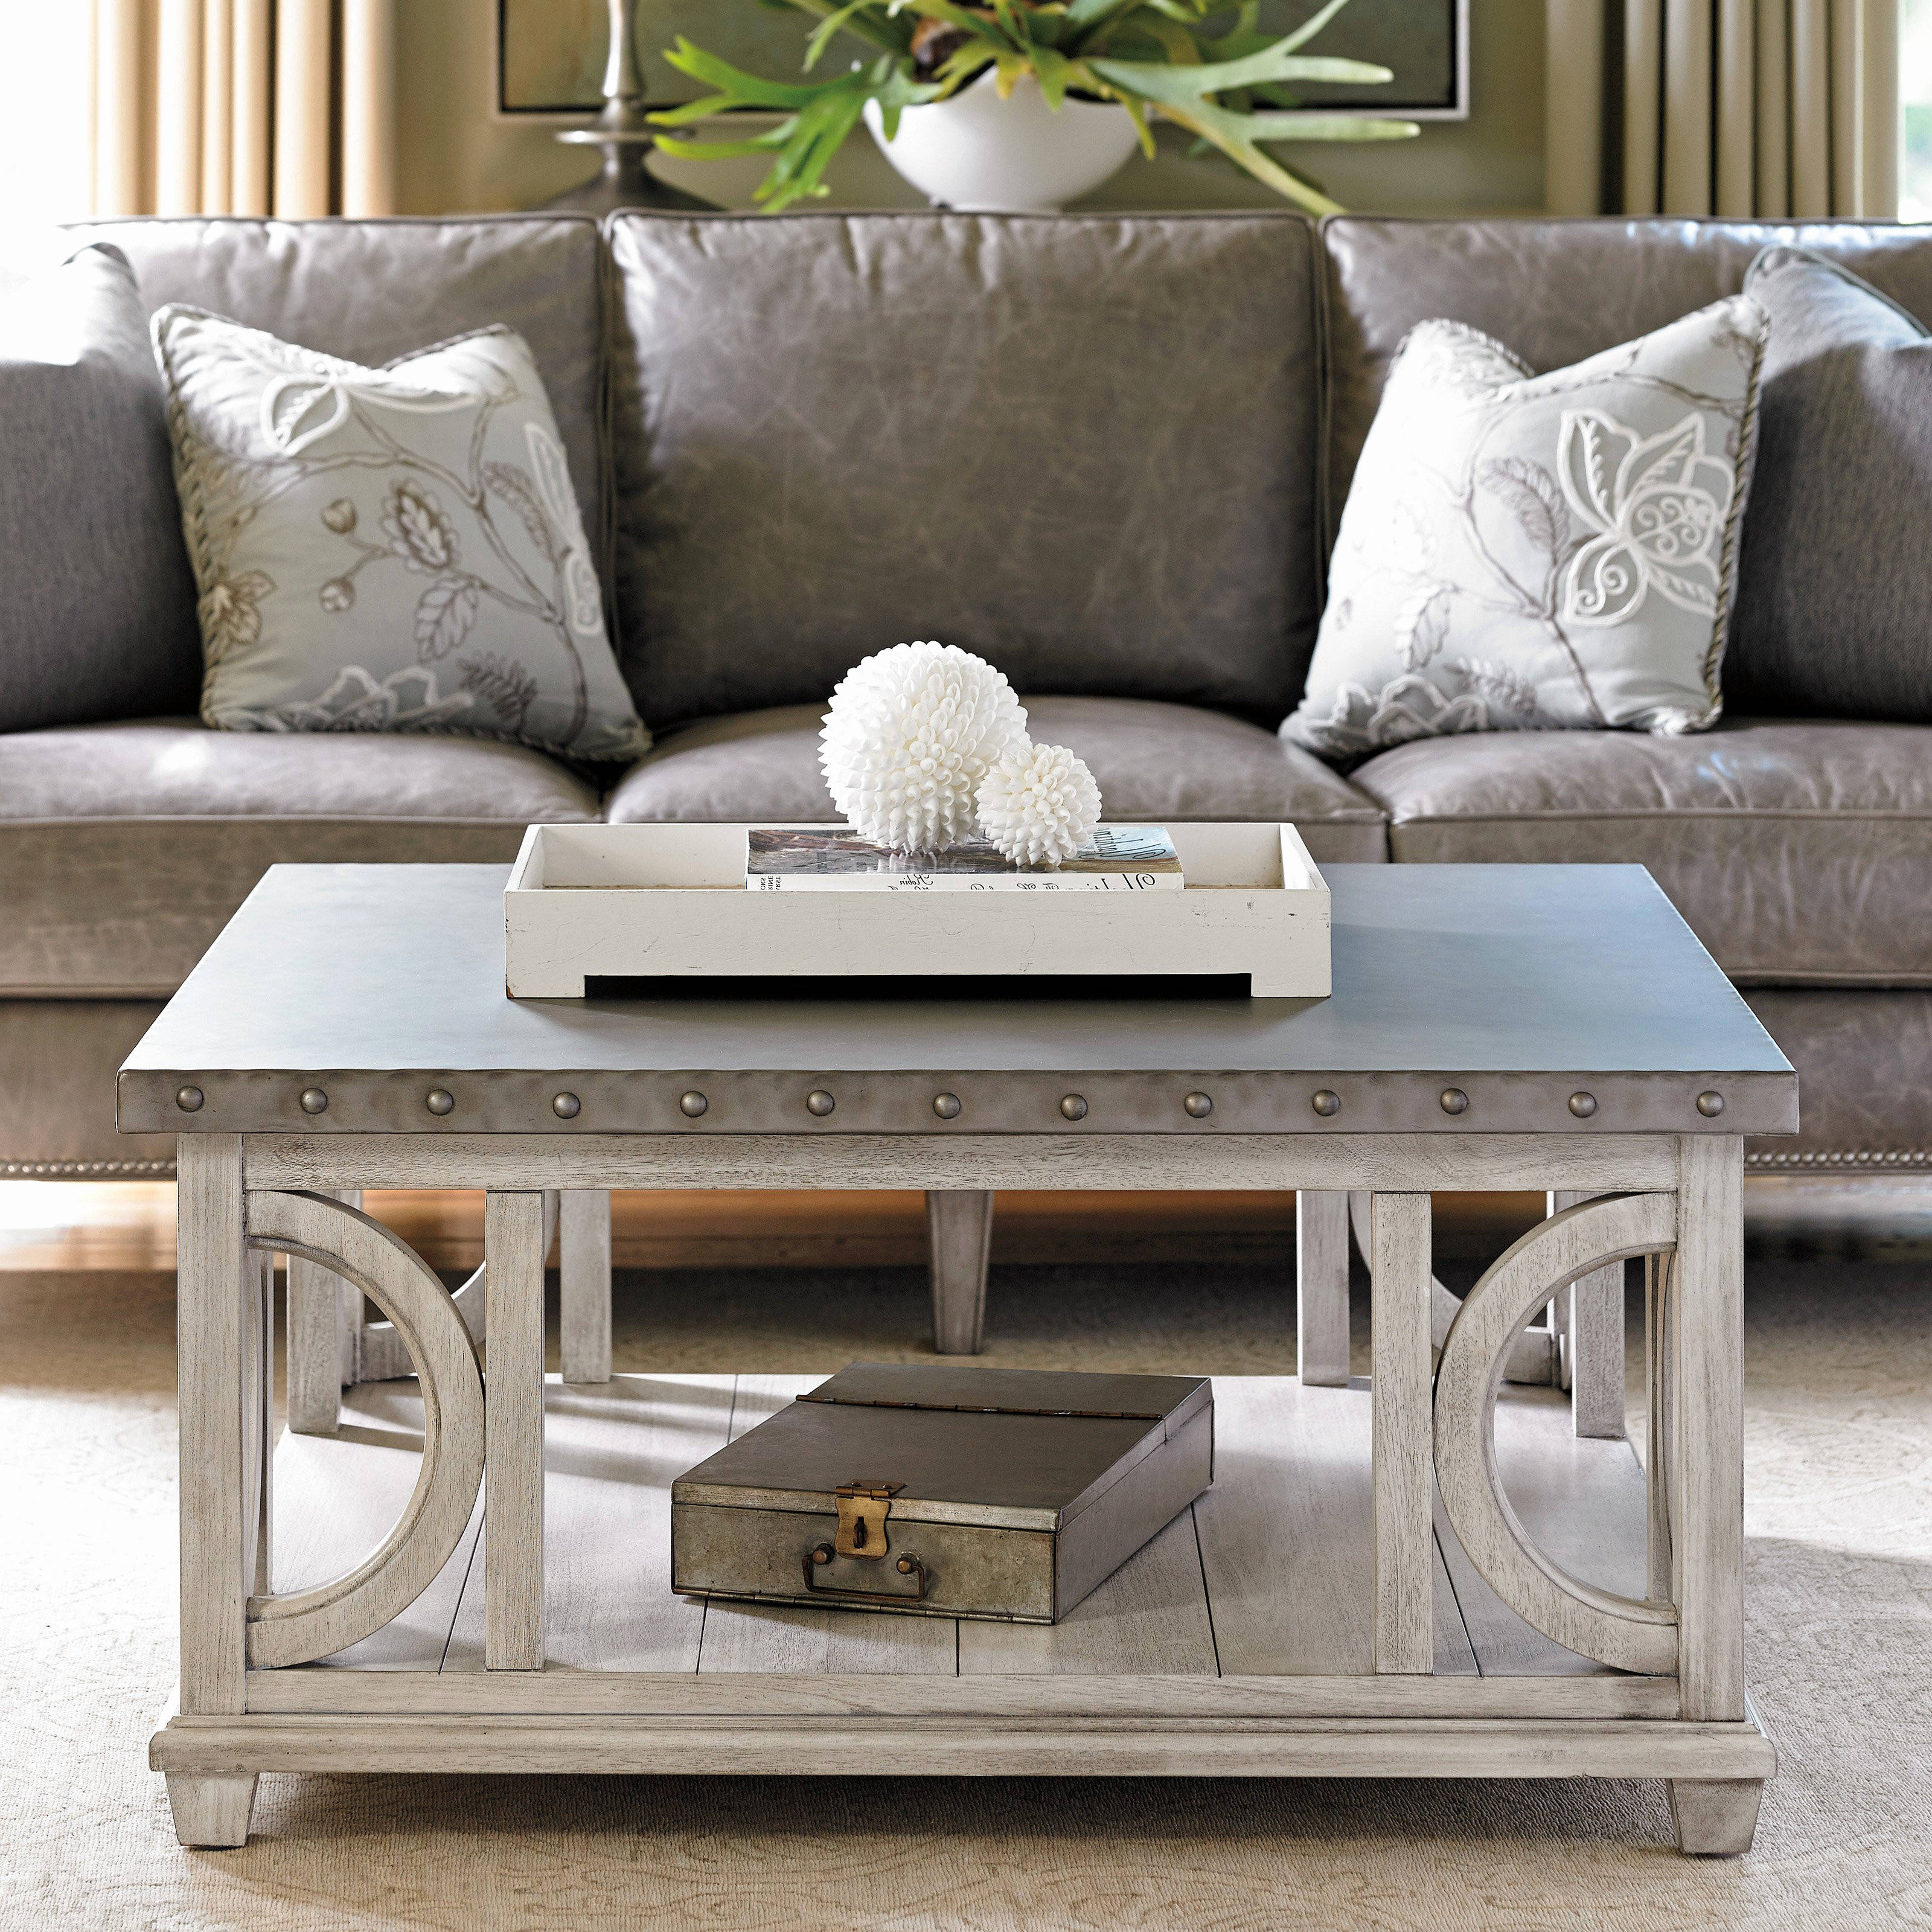 Popular Joanna Gaines Coffee Table Best Of Magnolia Home Iron Trestle In Magnolia Home Iron Trestle Cocktail Tables (View 20 of 20)